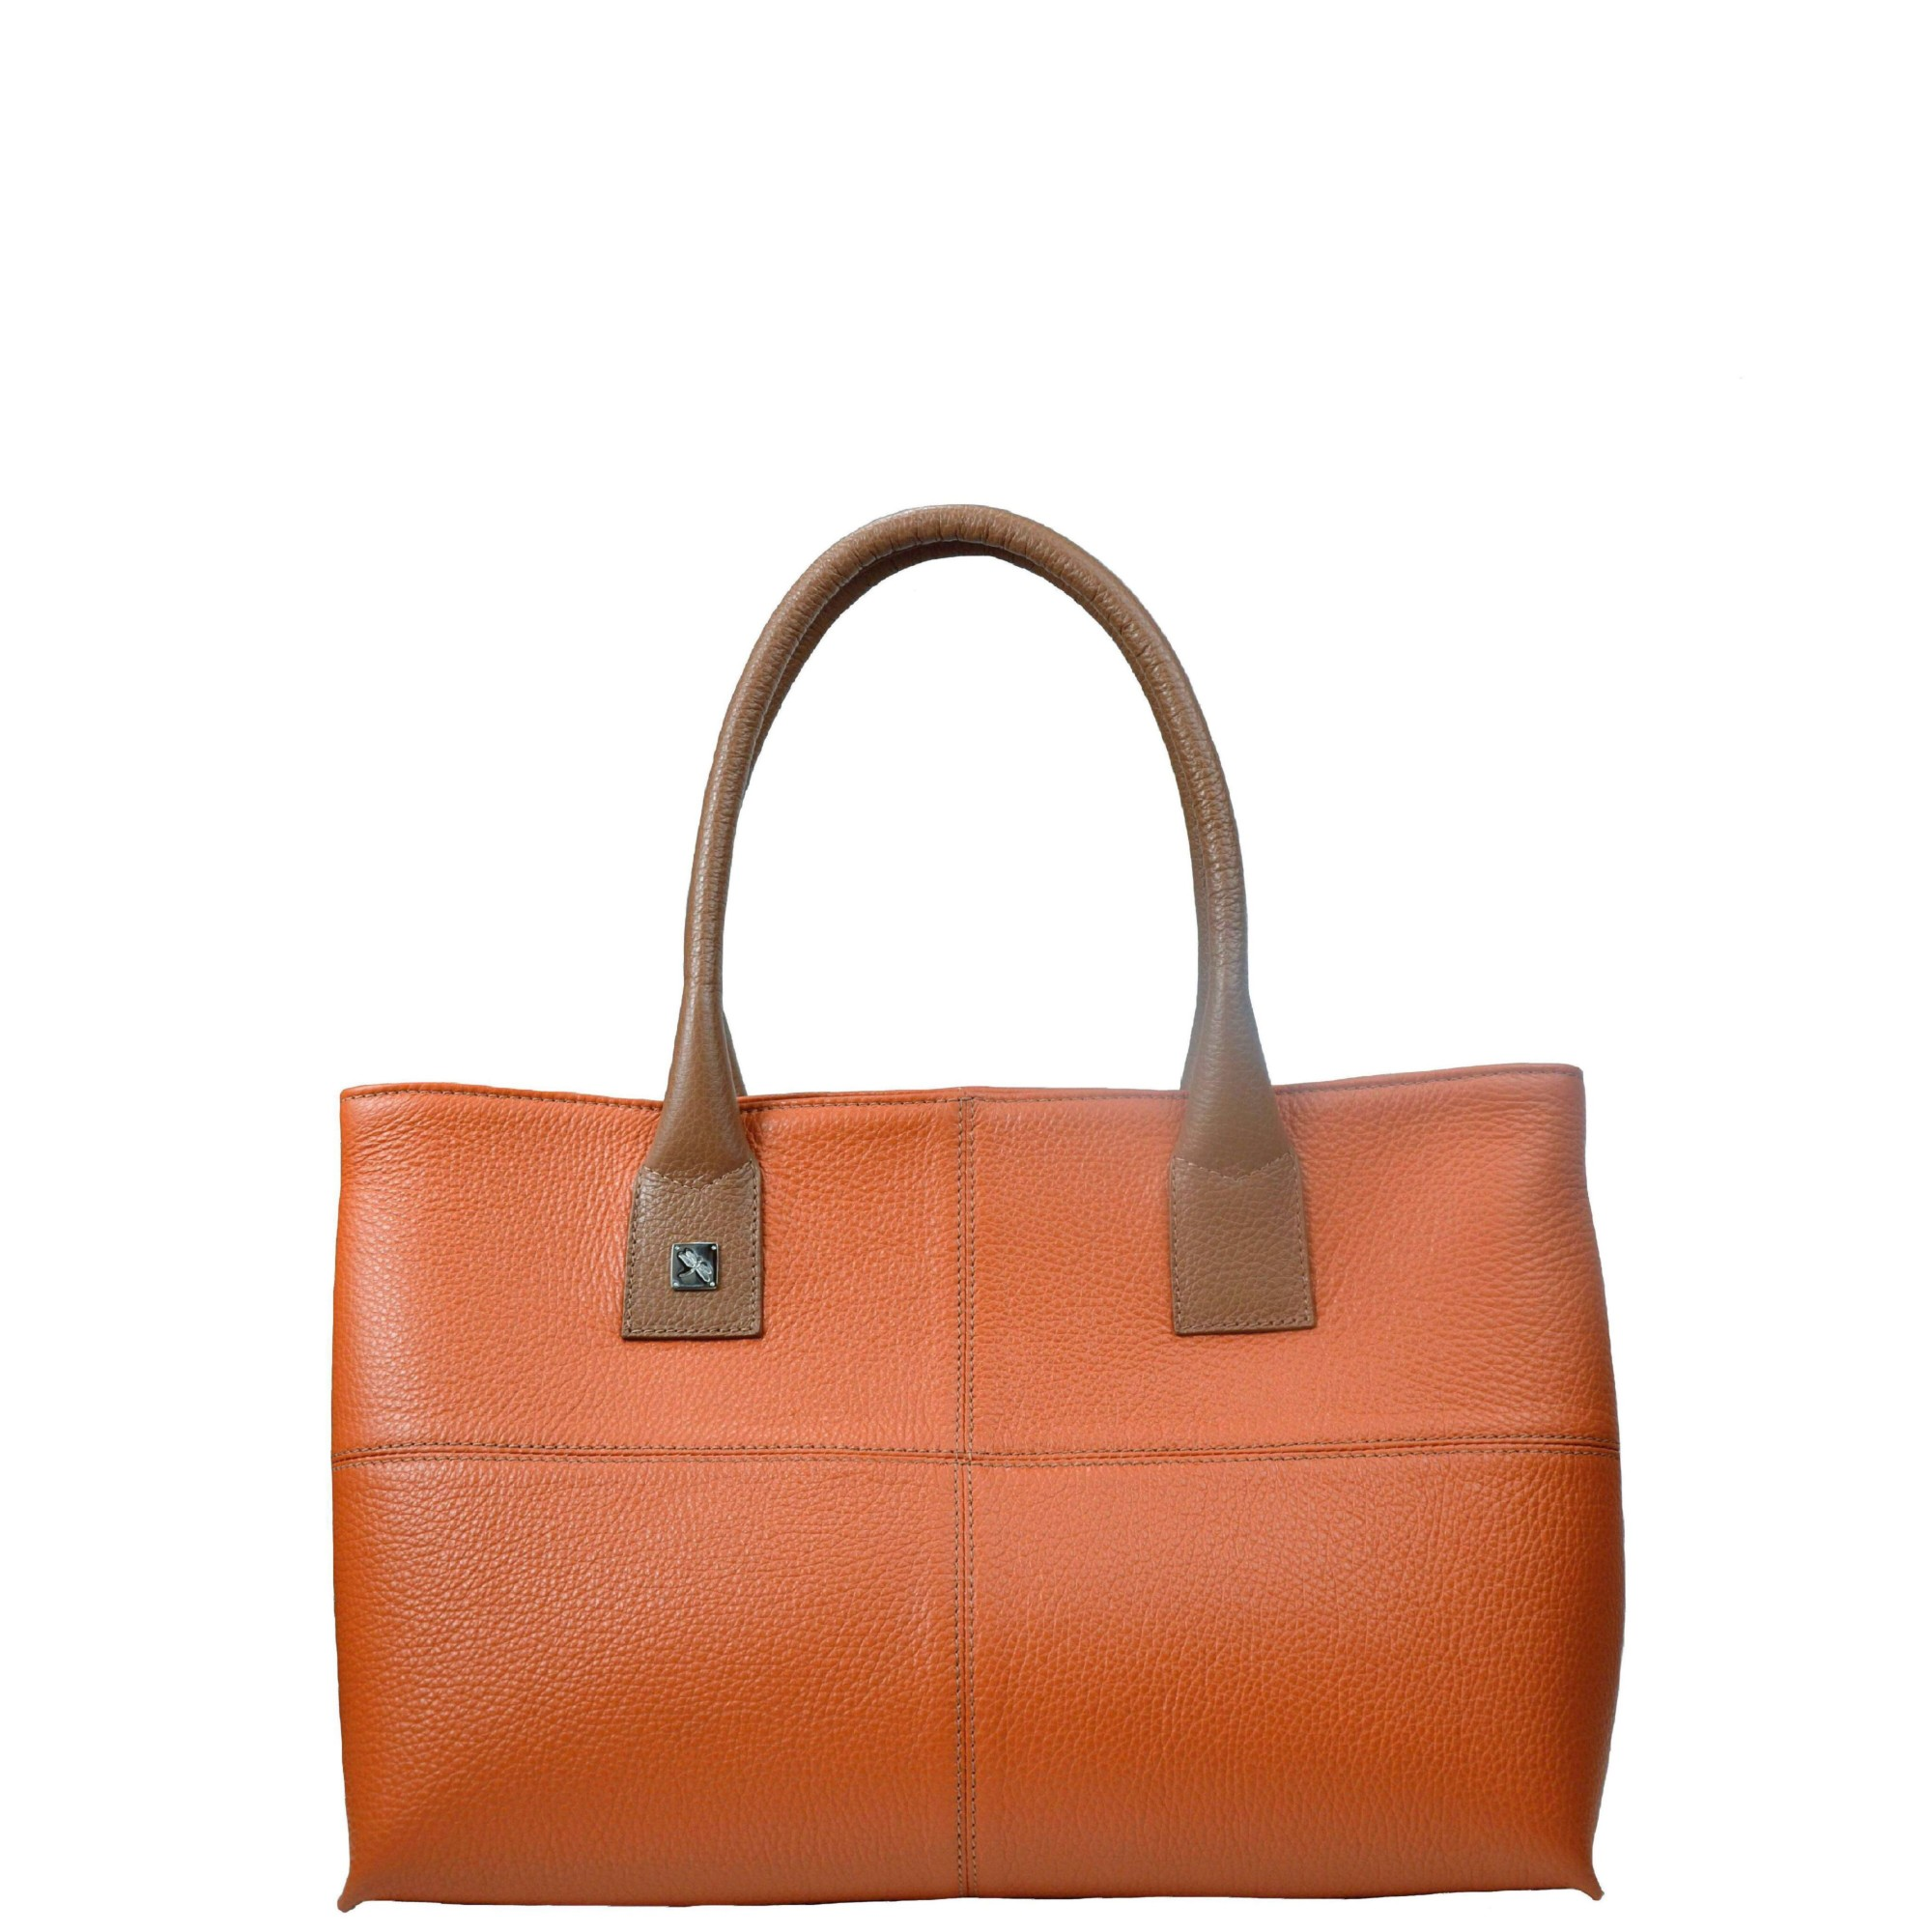 Natalia S Orange Tote Bag